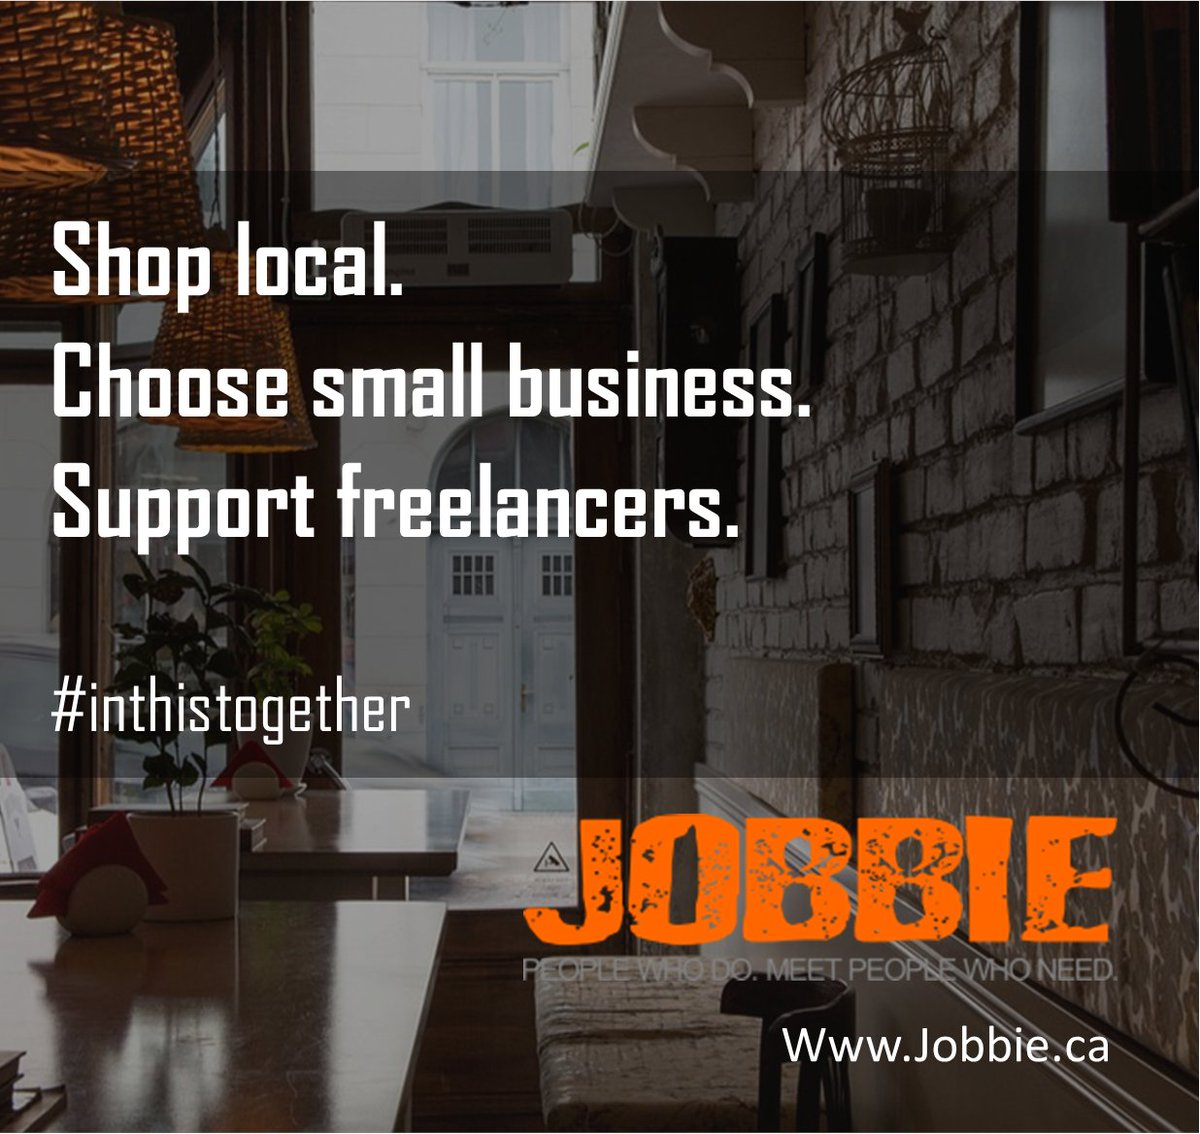 How do we get through this? Together. Buy local. Support small businesses. Hire local freelancers. Support local startups. #inthistogether #canadianbusiness #madeincanada #shoplocal #Canada #Canadian #canadastartup #albertastartup #YYC Share if you agree! https://t.co/ILKWDh5C9C https://t.co/yoRH7rOOnL